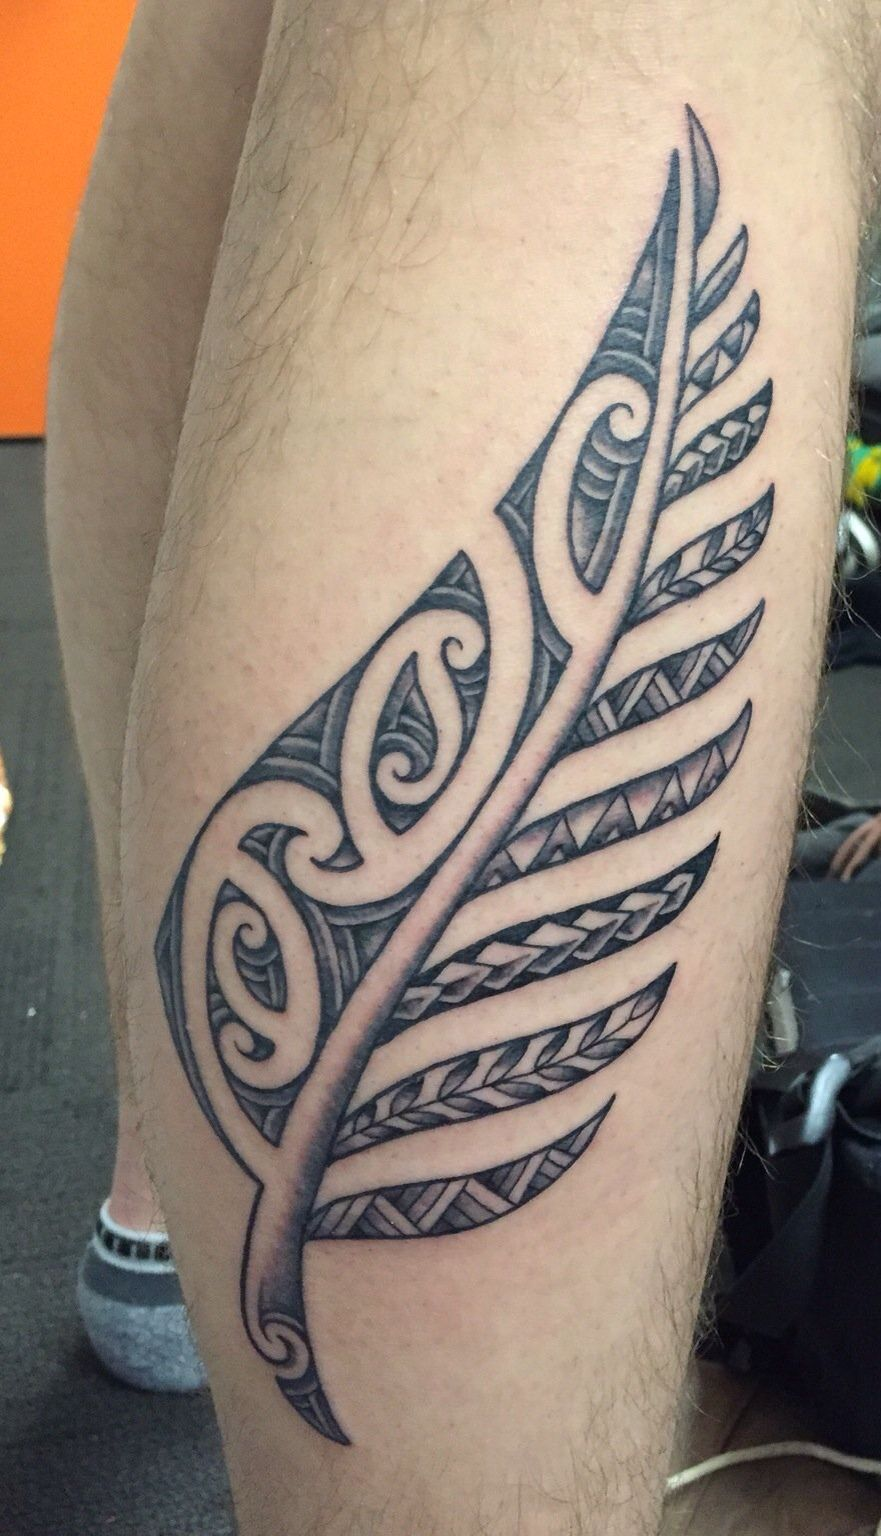 New Zealand Tattoo Maori: Maori Inspired Silver Fern